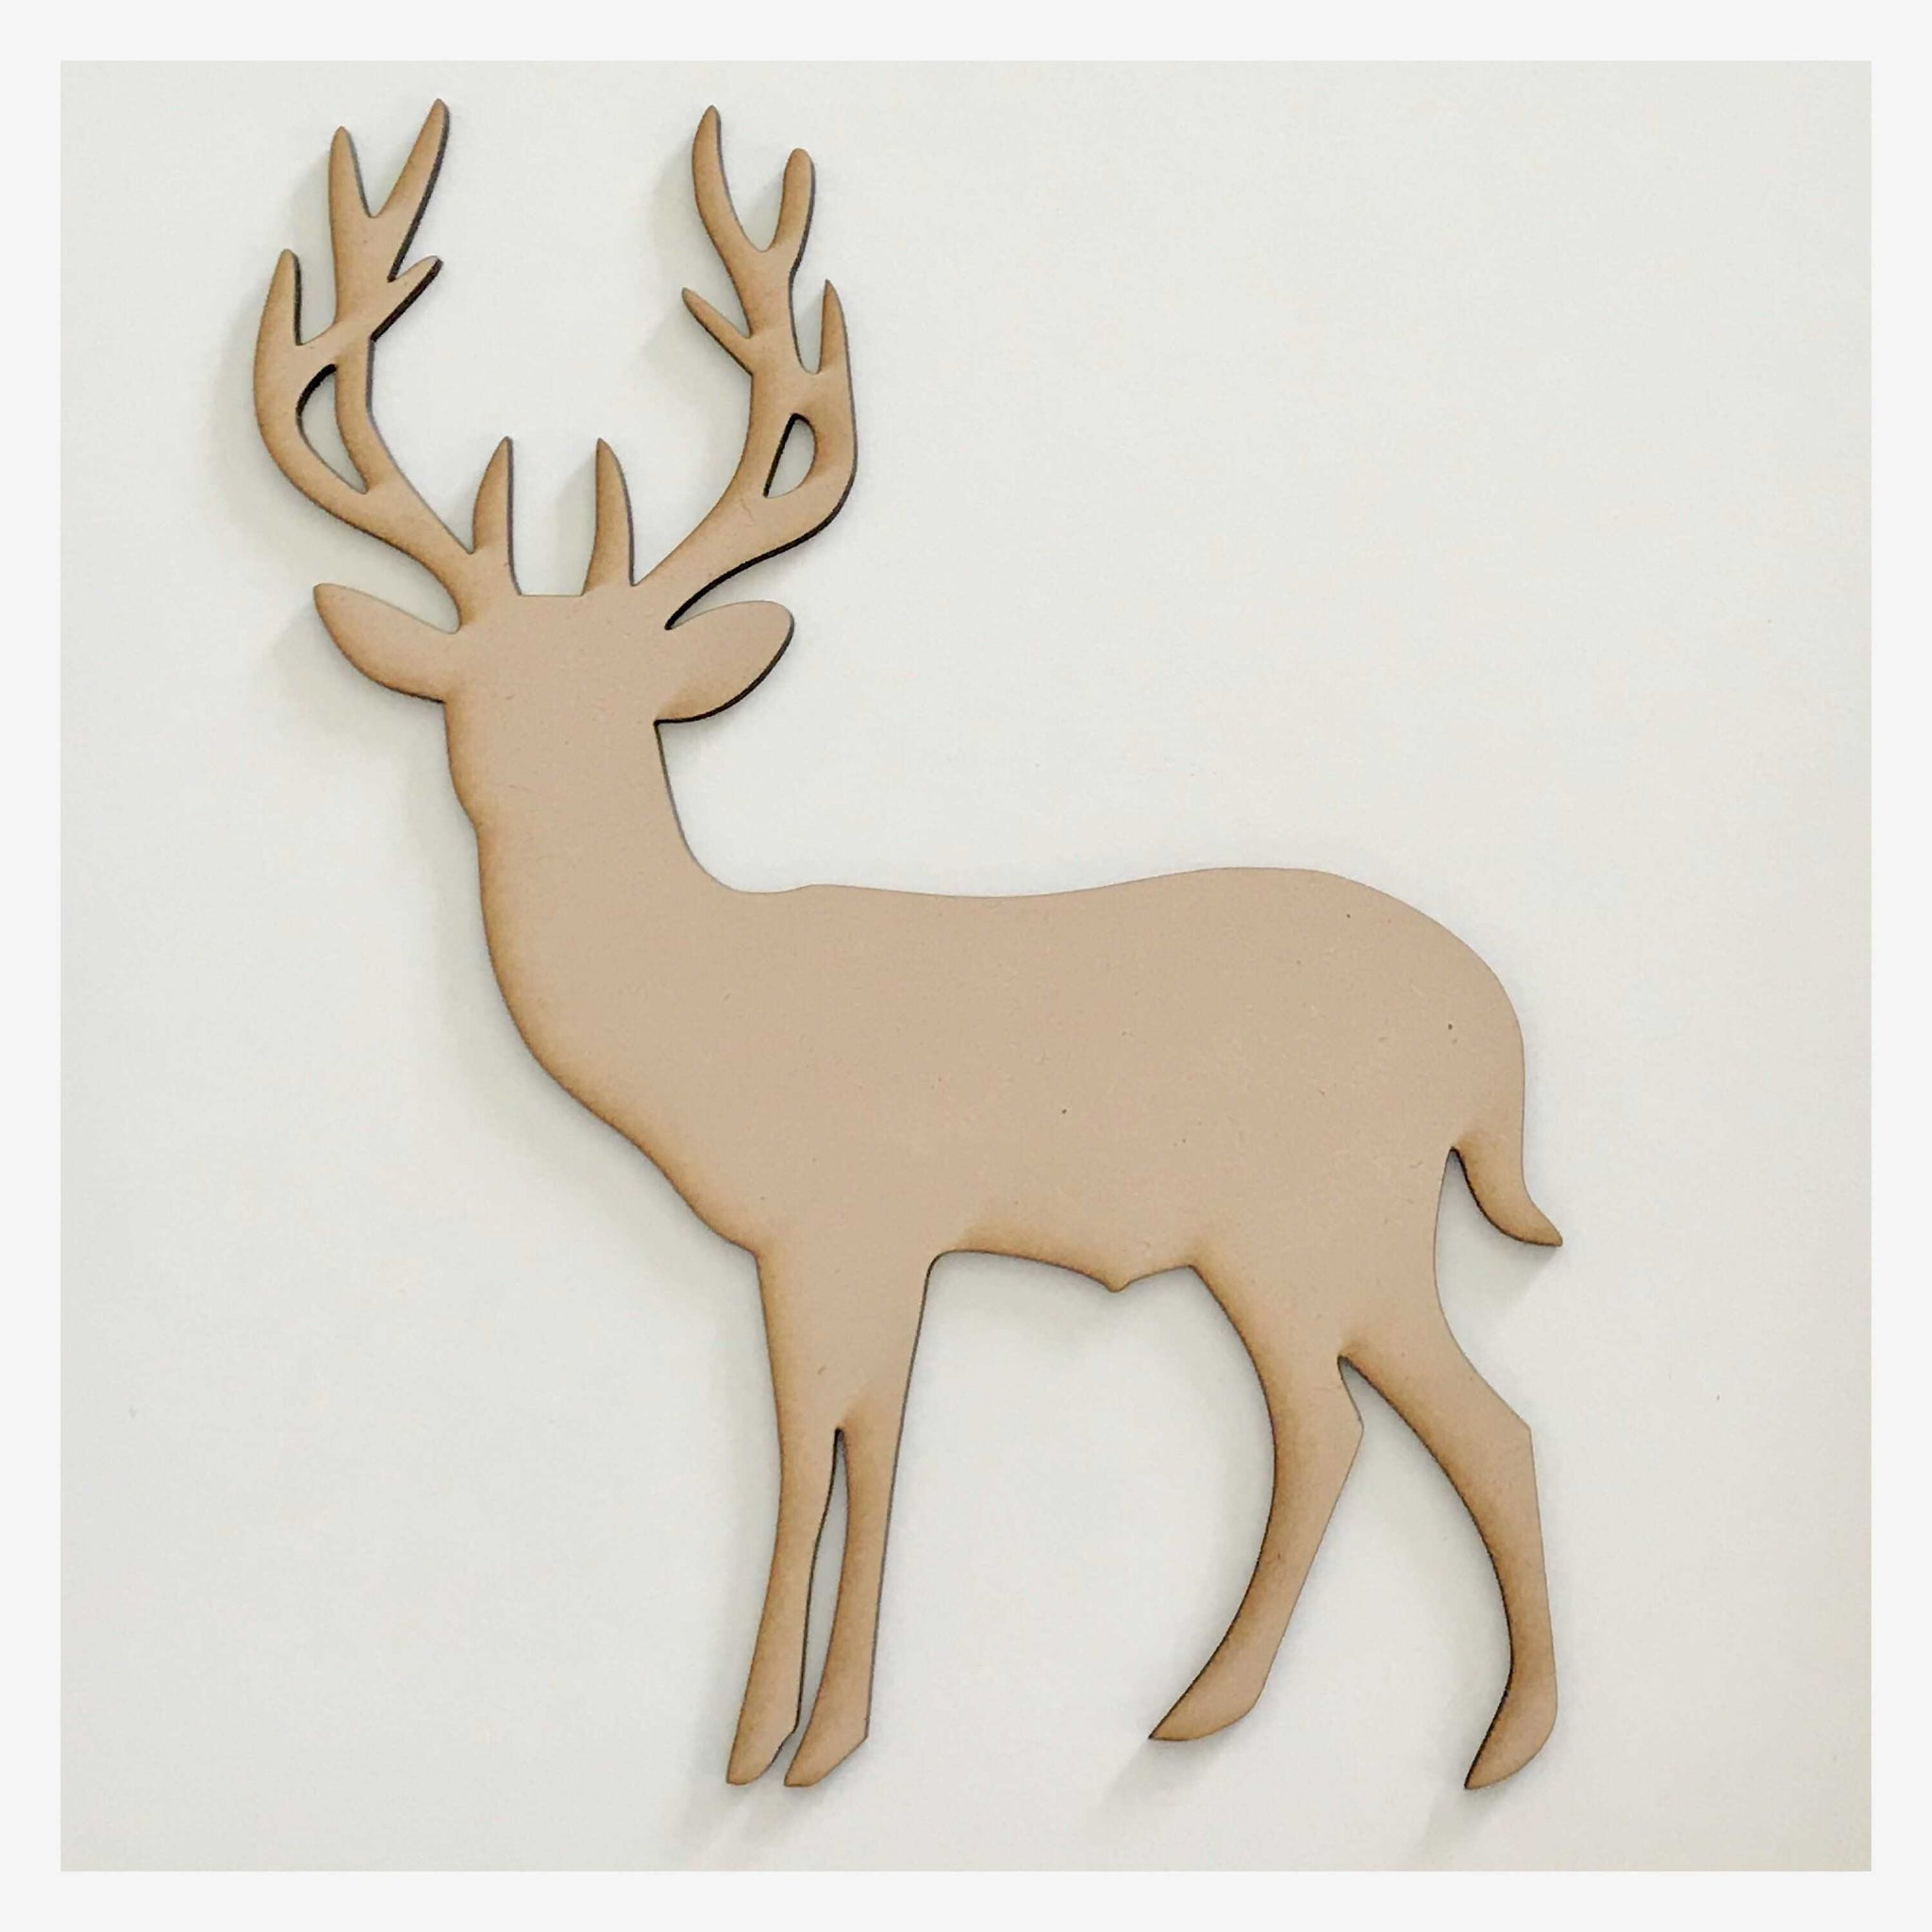 Deer Stag Standing Wild Reindeer Raw MDF Timber DIY Craft - The Renmy Store